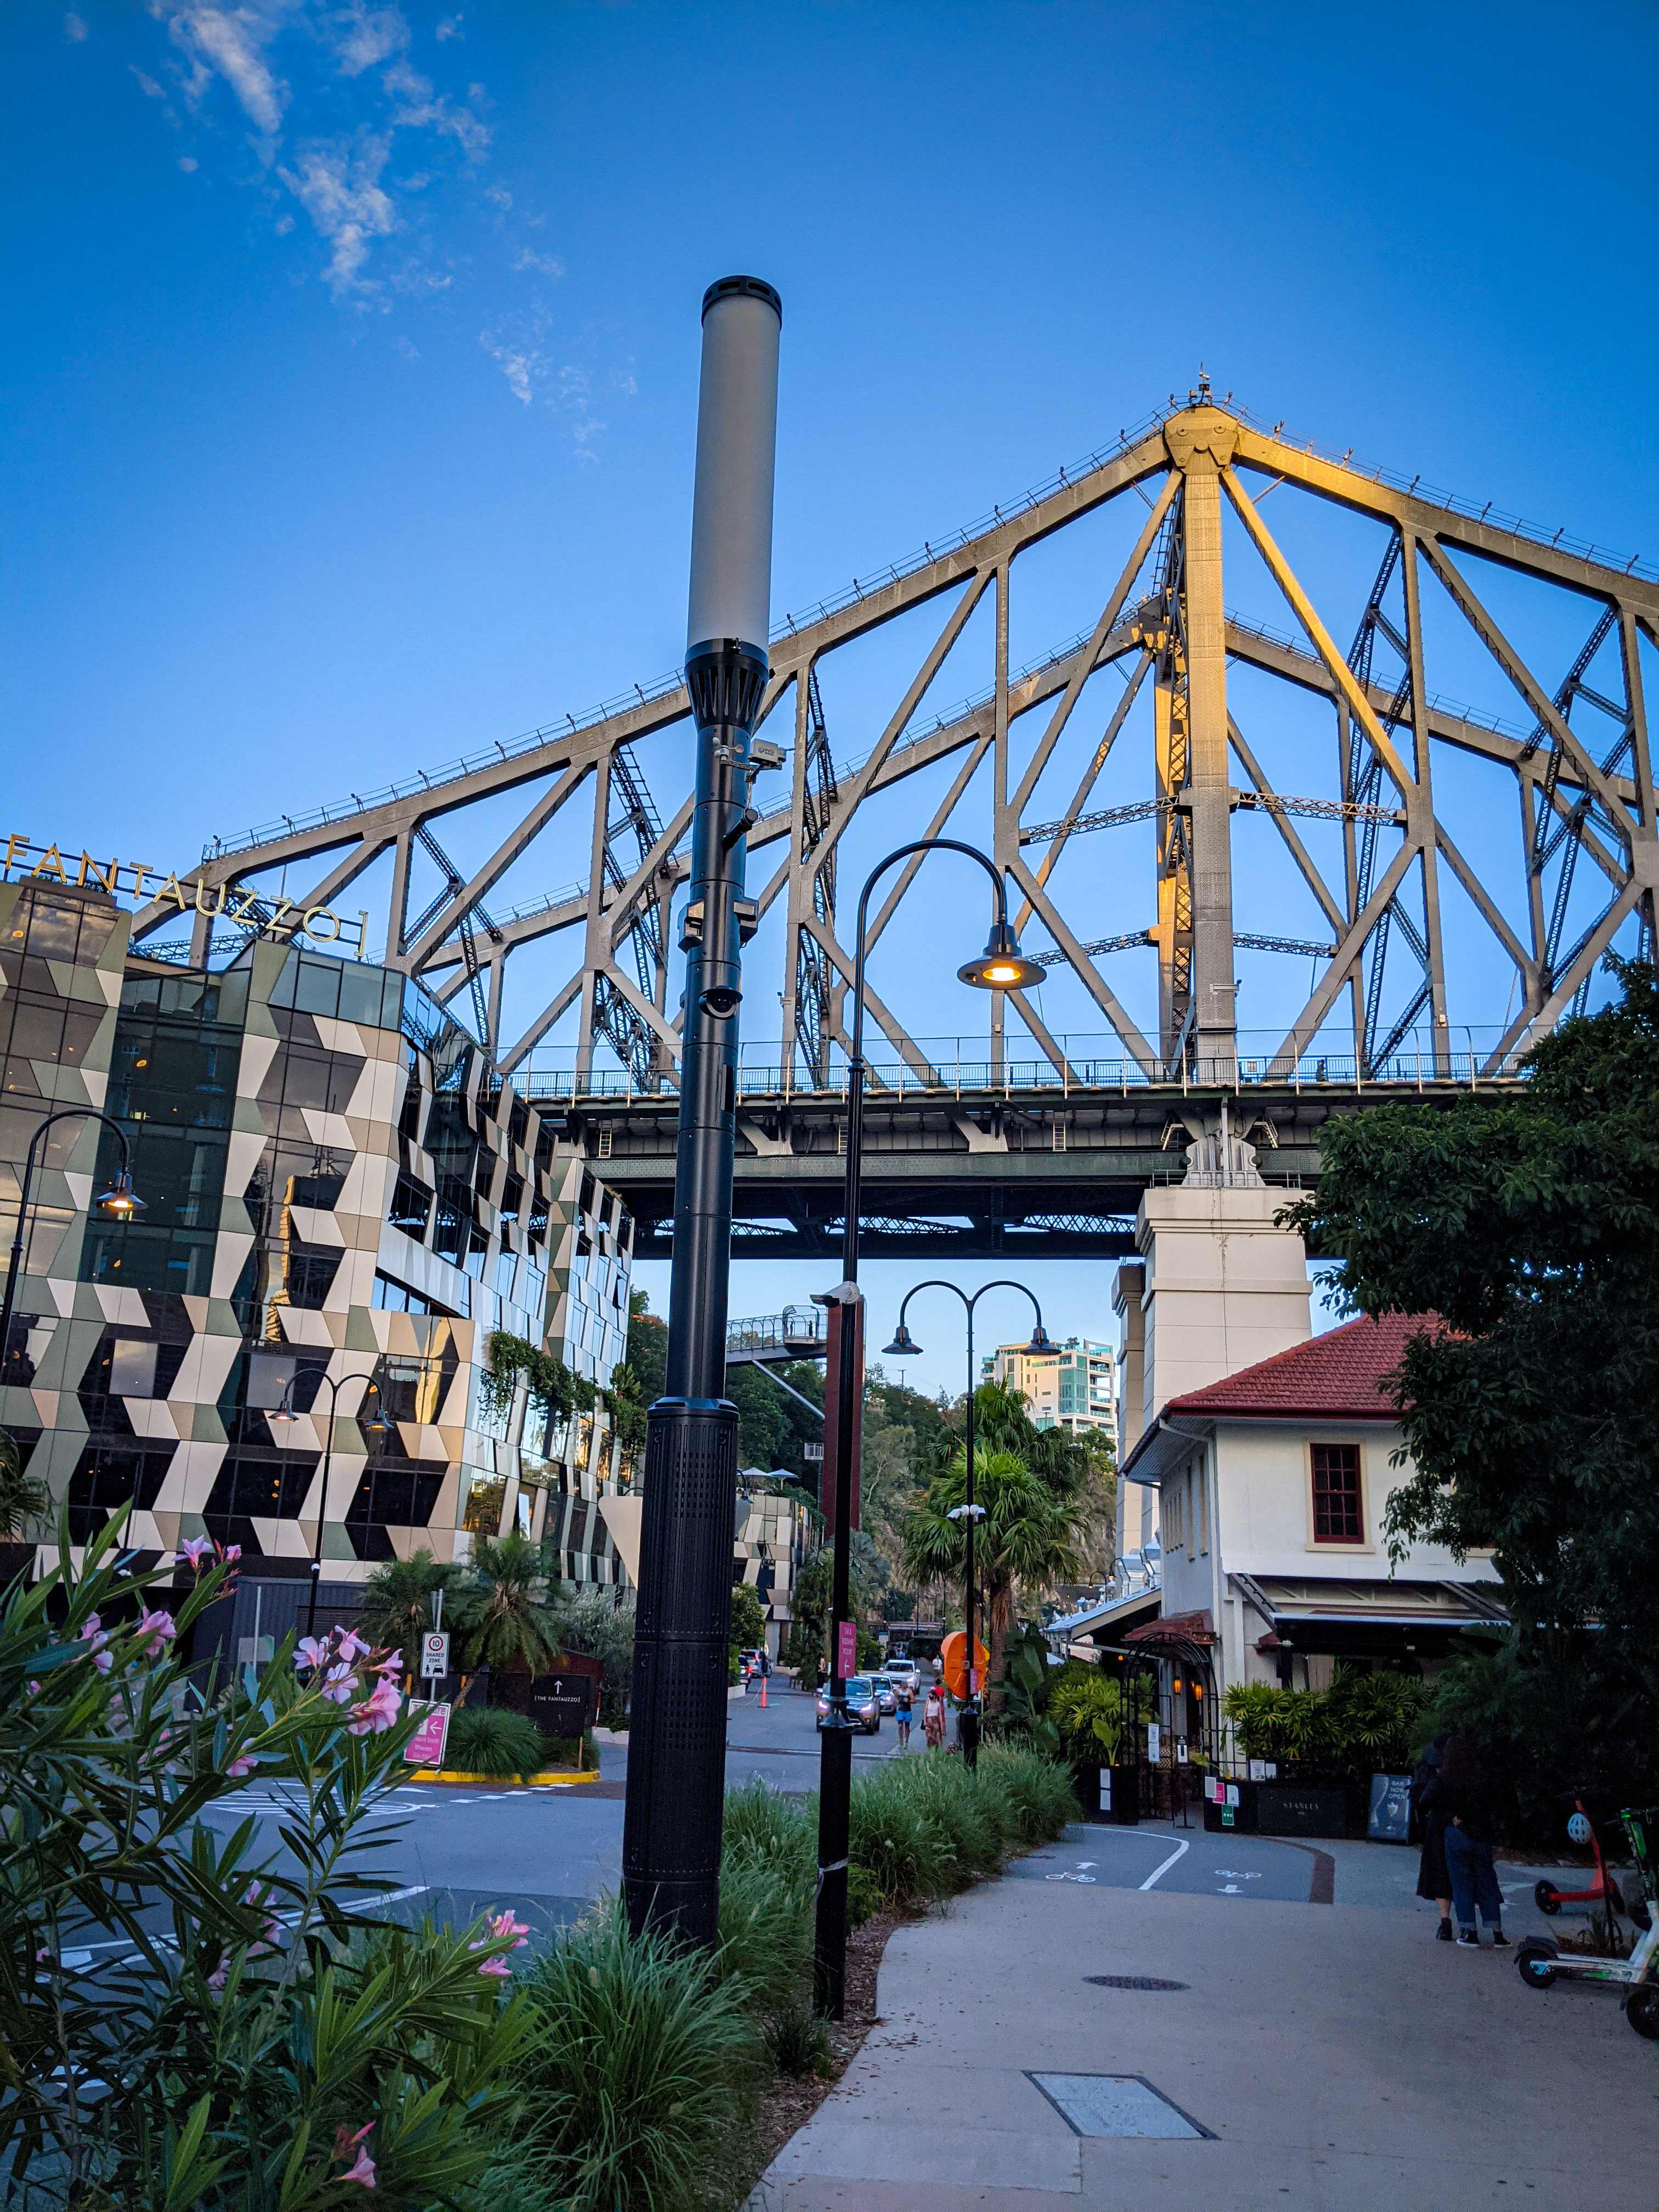 The western end of Howard Smith Wharves, with new, old and refurbished buildings under the Storey Bridge